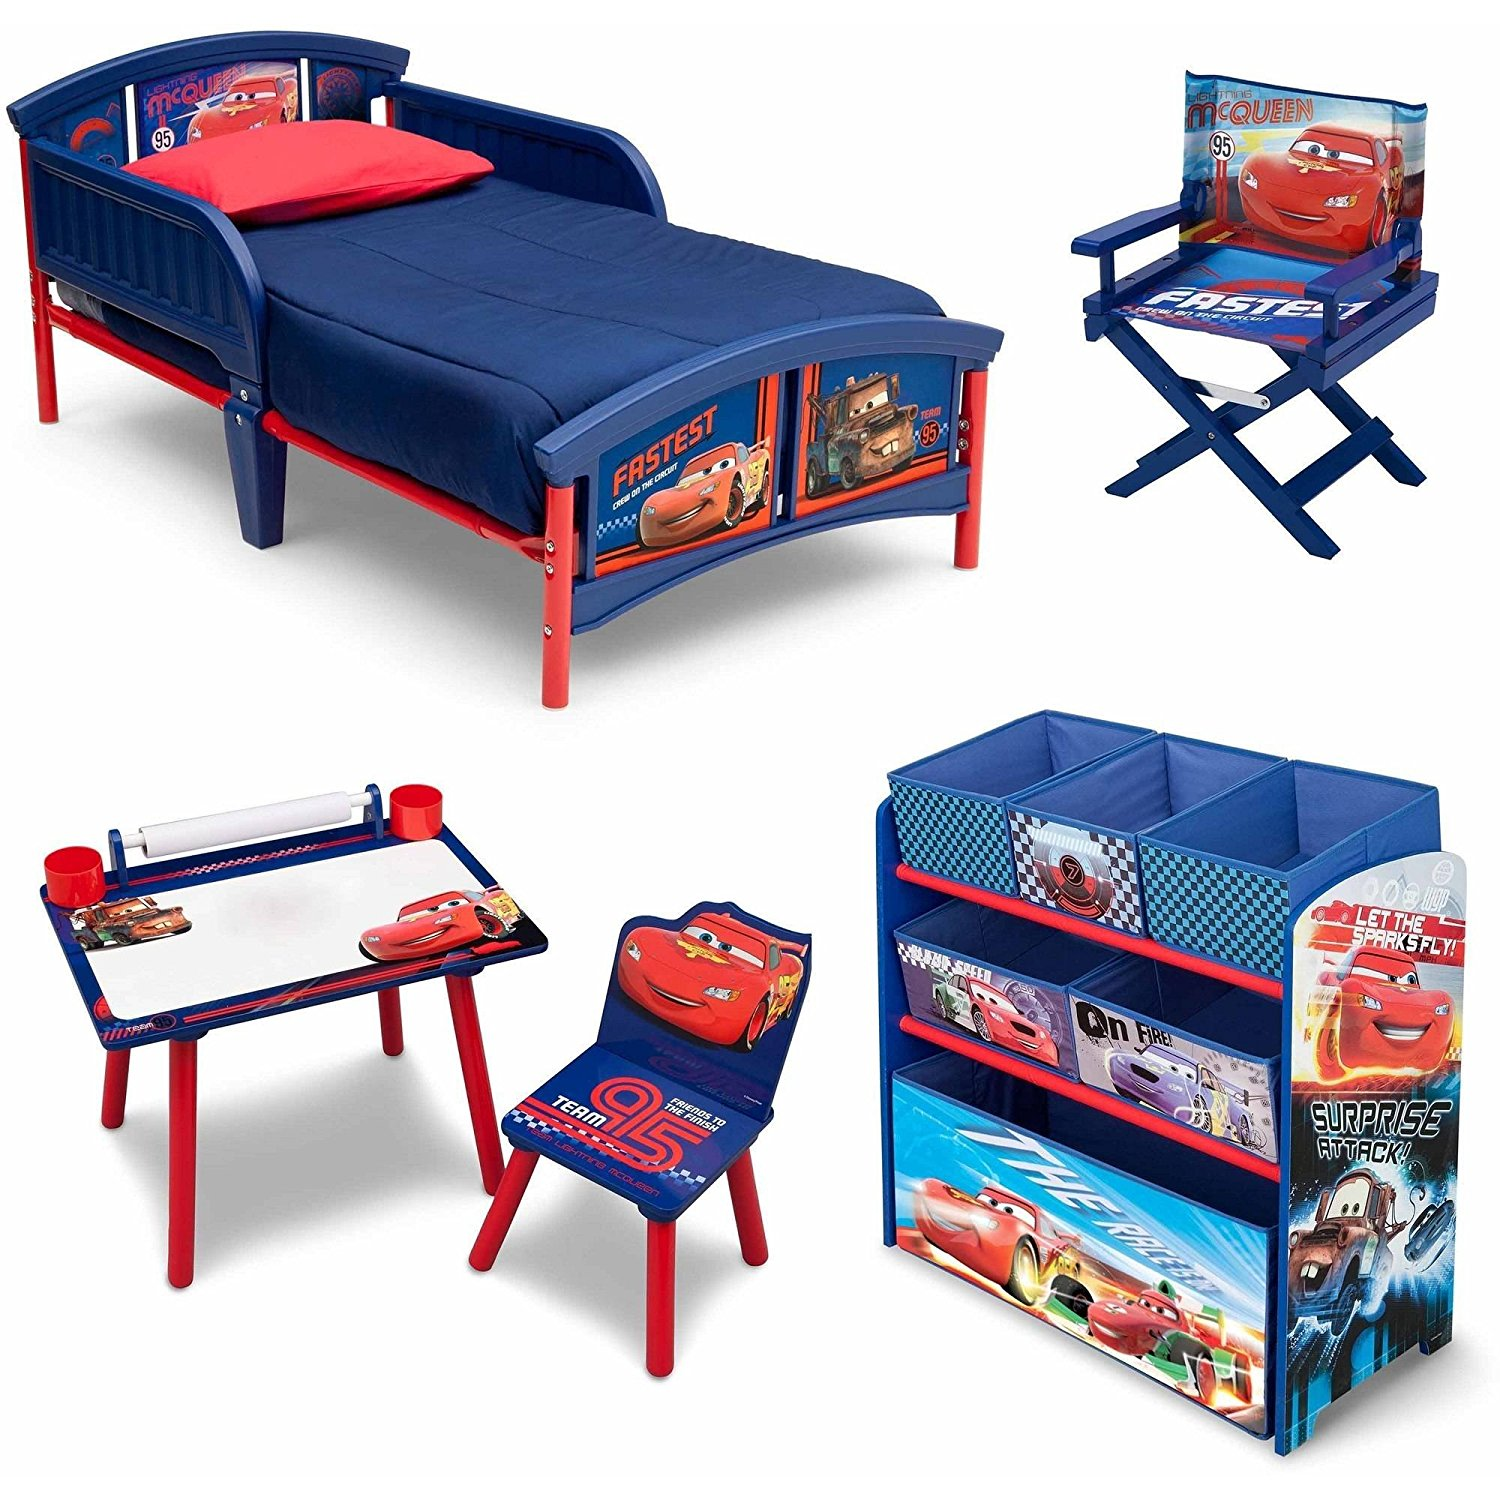 NEW! 5 Set Room-in-a-Box Toddler Bed with Safety Rails Multi-Bin Toy Organizer with Six Fabric Toy Box Table and Chair Art Desk Set, Plus Director's Chair (Disney Cars)